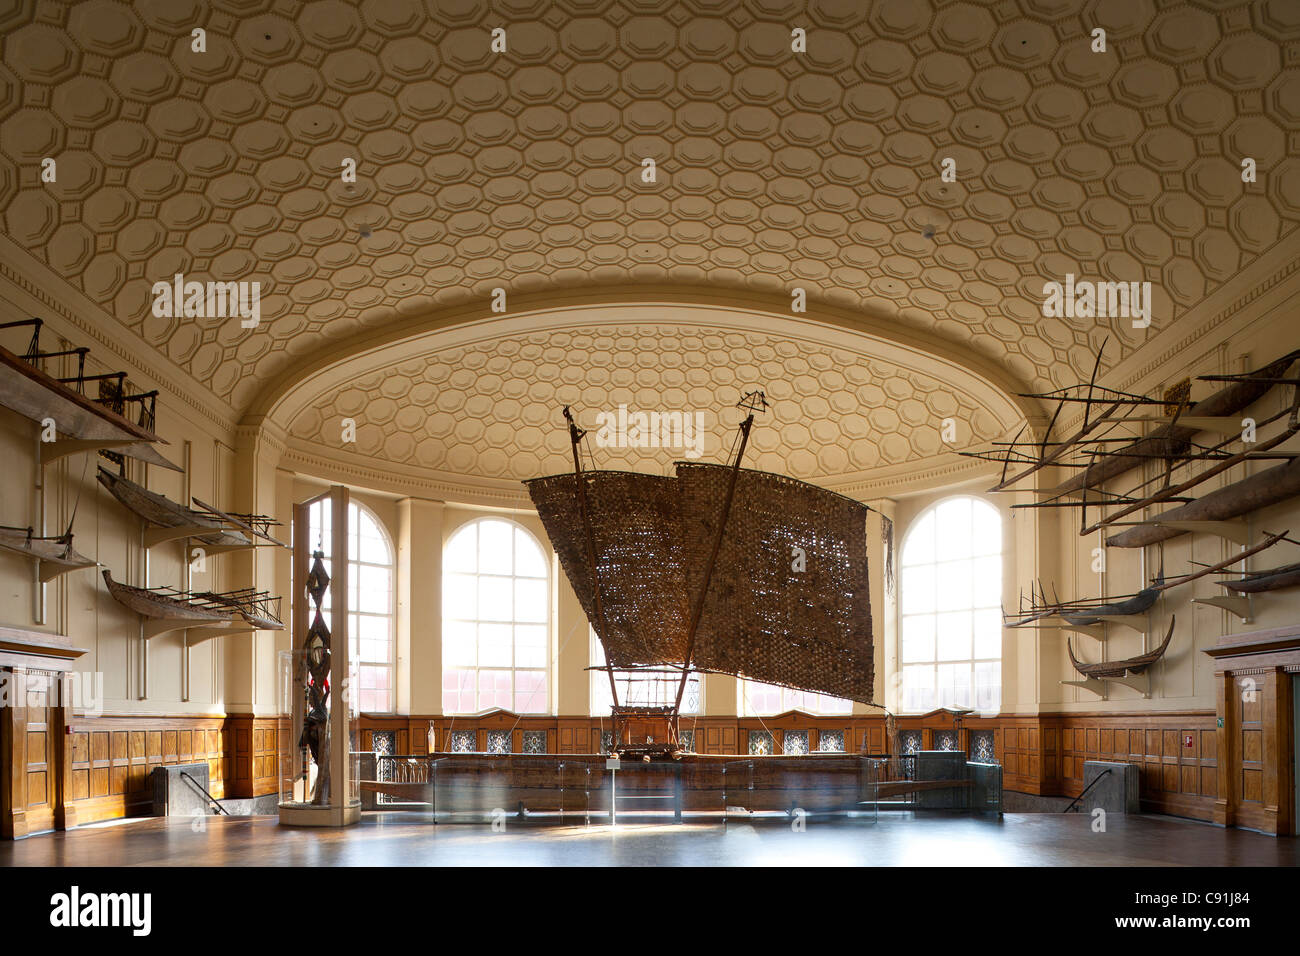 Museum of Ethnology Hamburg, Hanseatic city of Hamburg, Germany, Europe - Stock Image